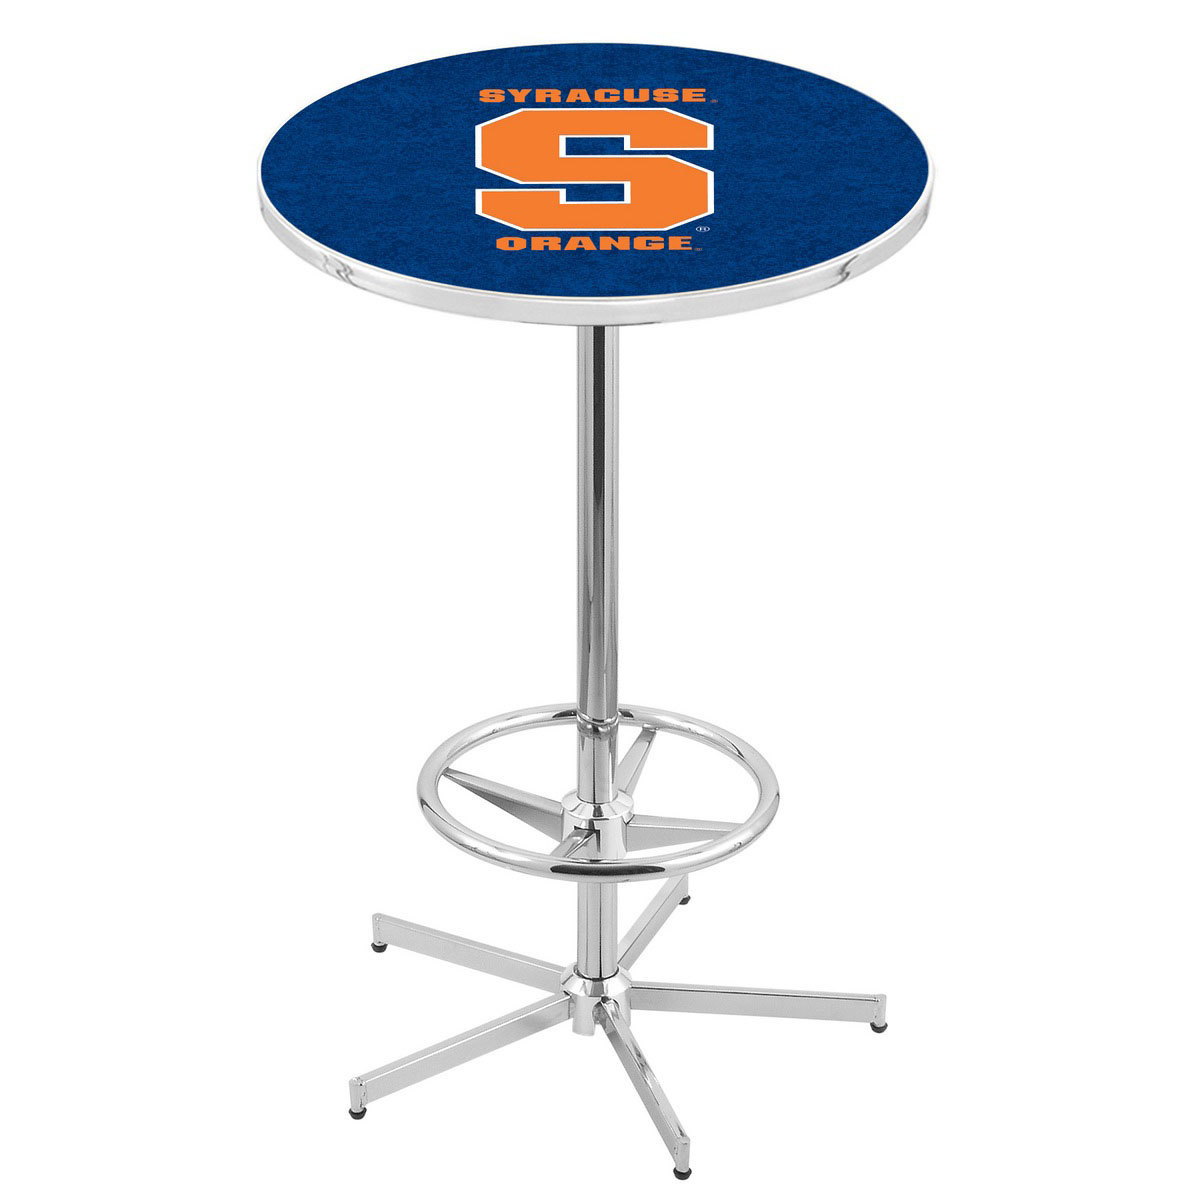 Check out the Chrome Syracuse Pub Table Product Photo